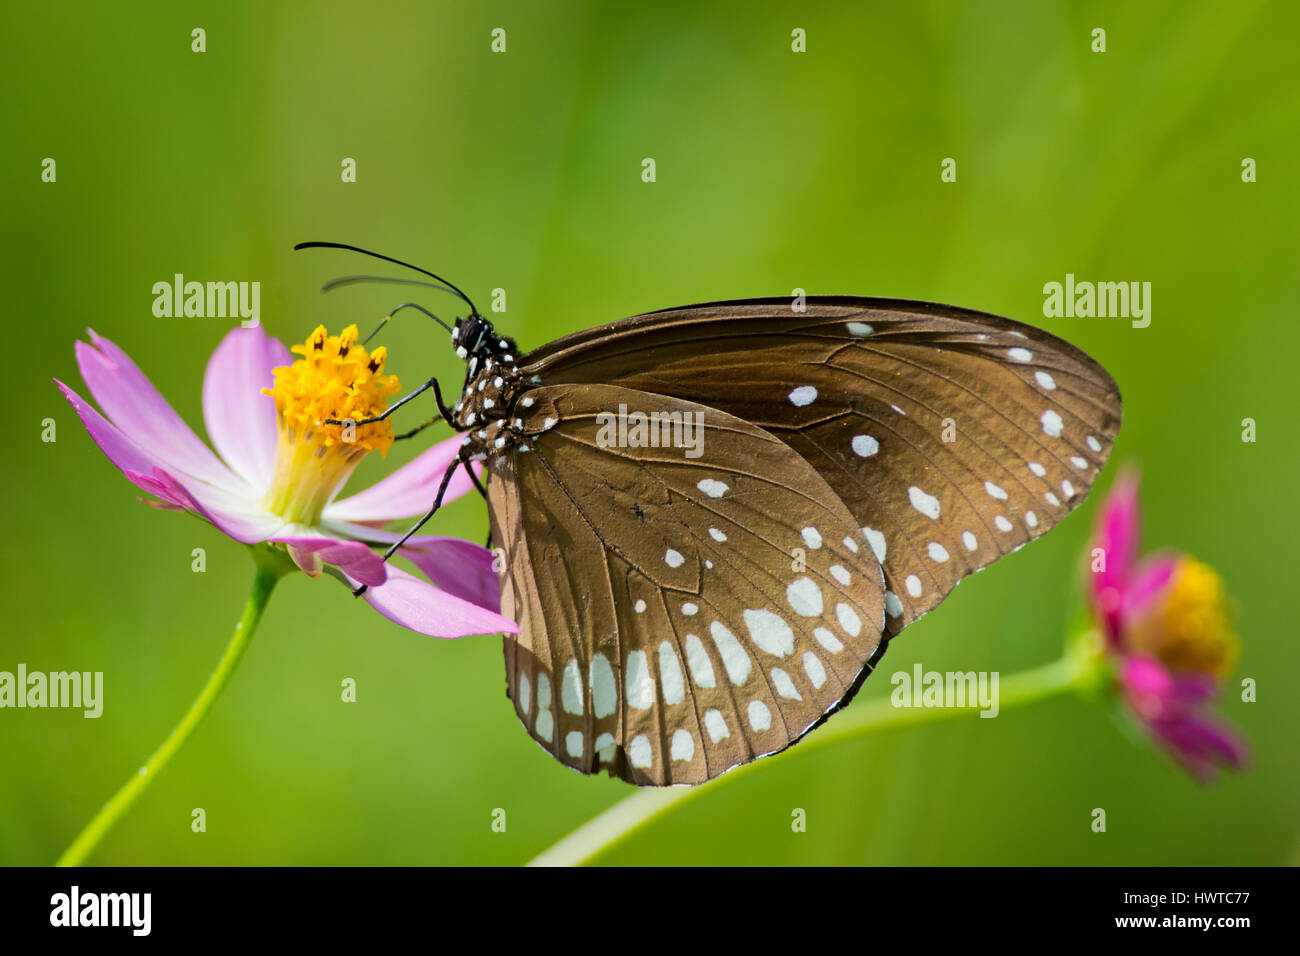 common crow butterfly on a flower in kanha national park india